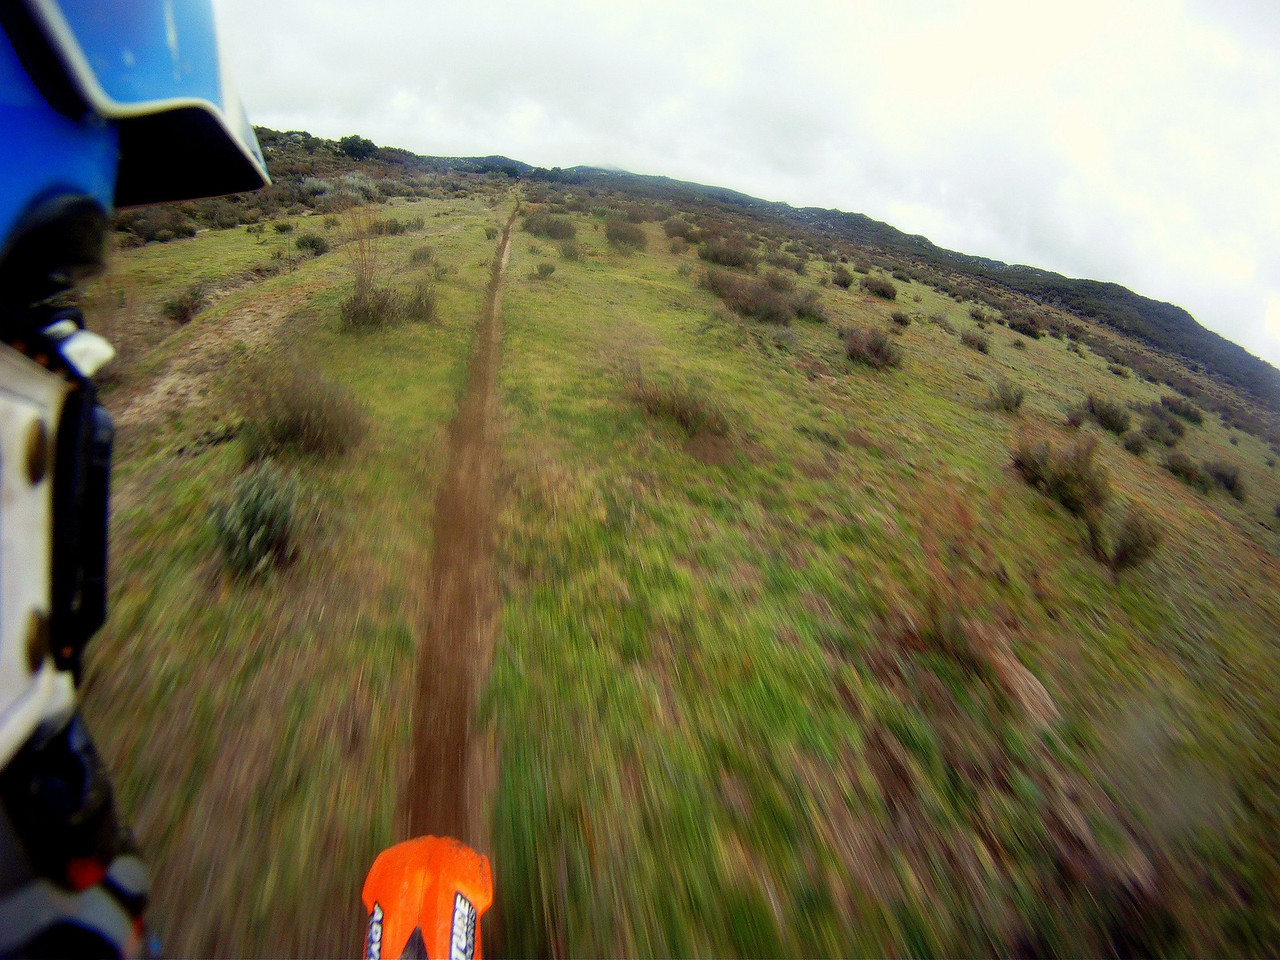 awesome single track!